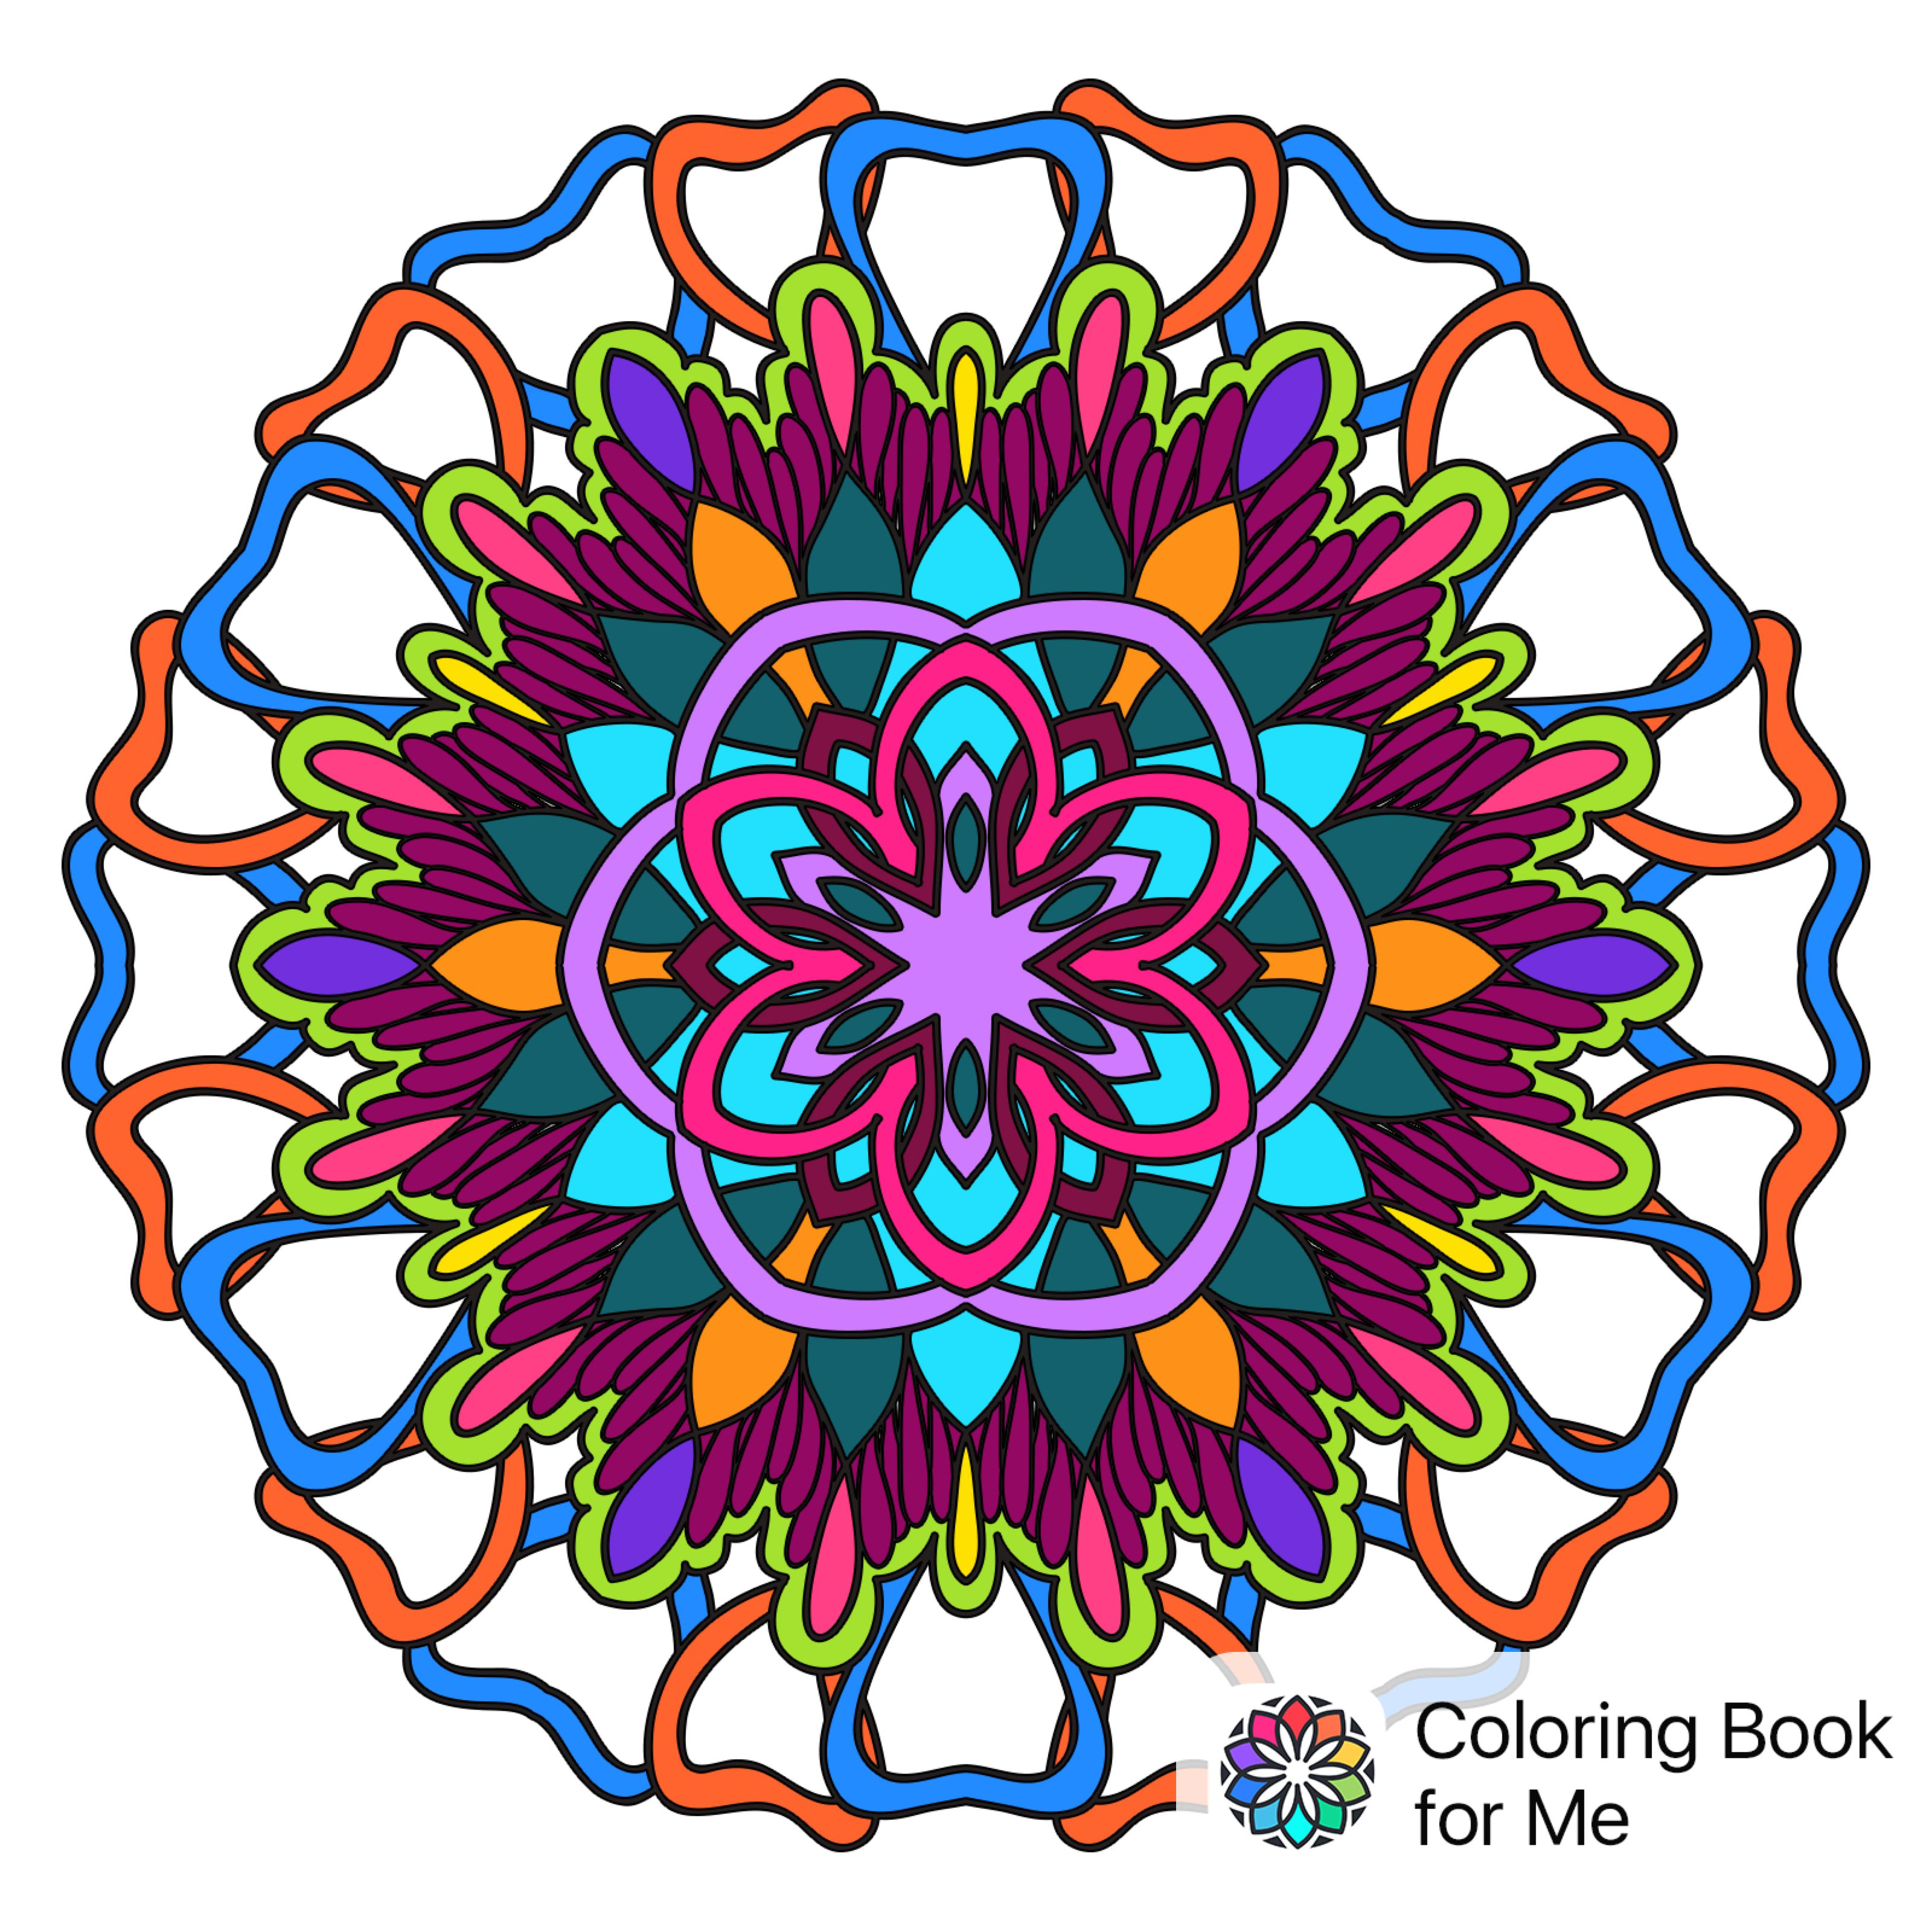 Coloring book for me full - Colored With Coloring Book For Me